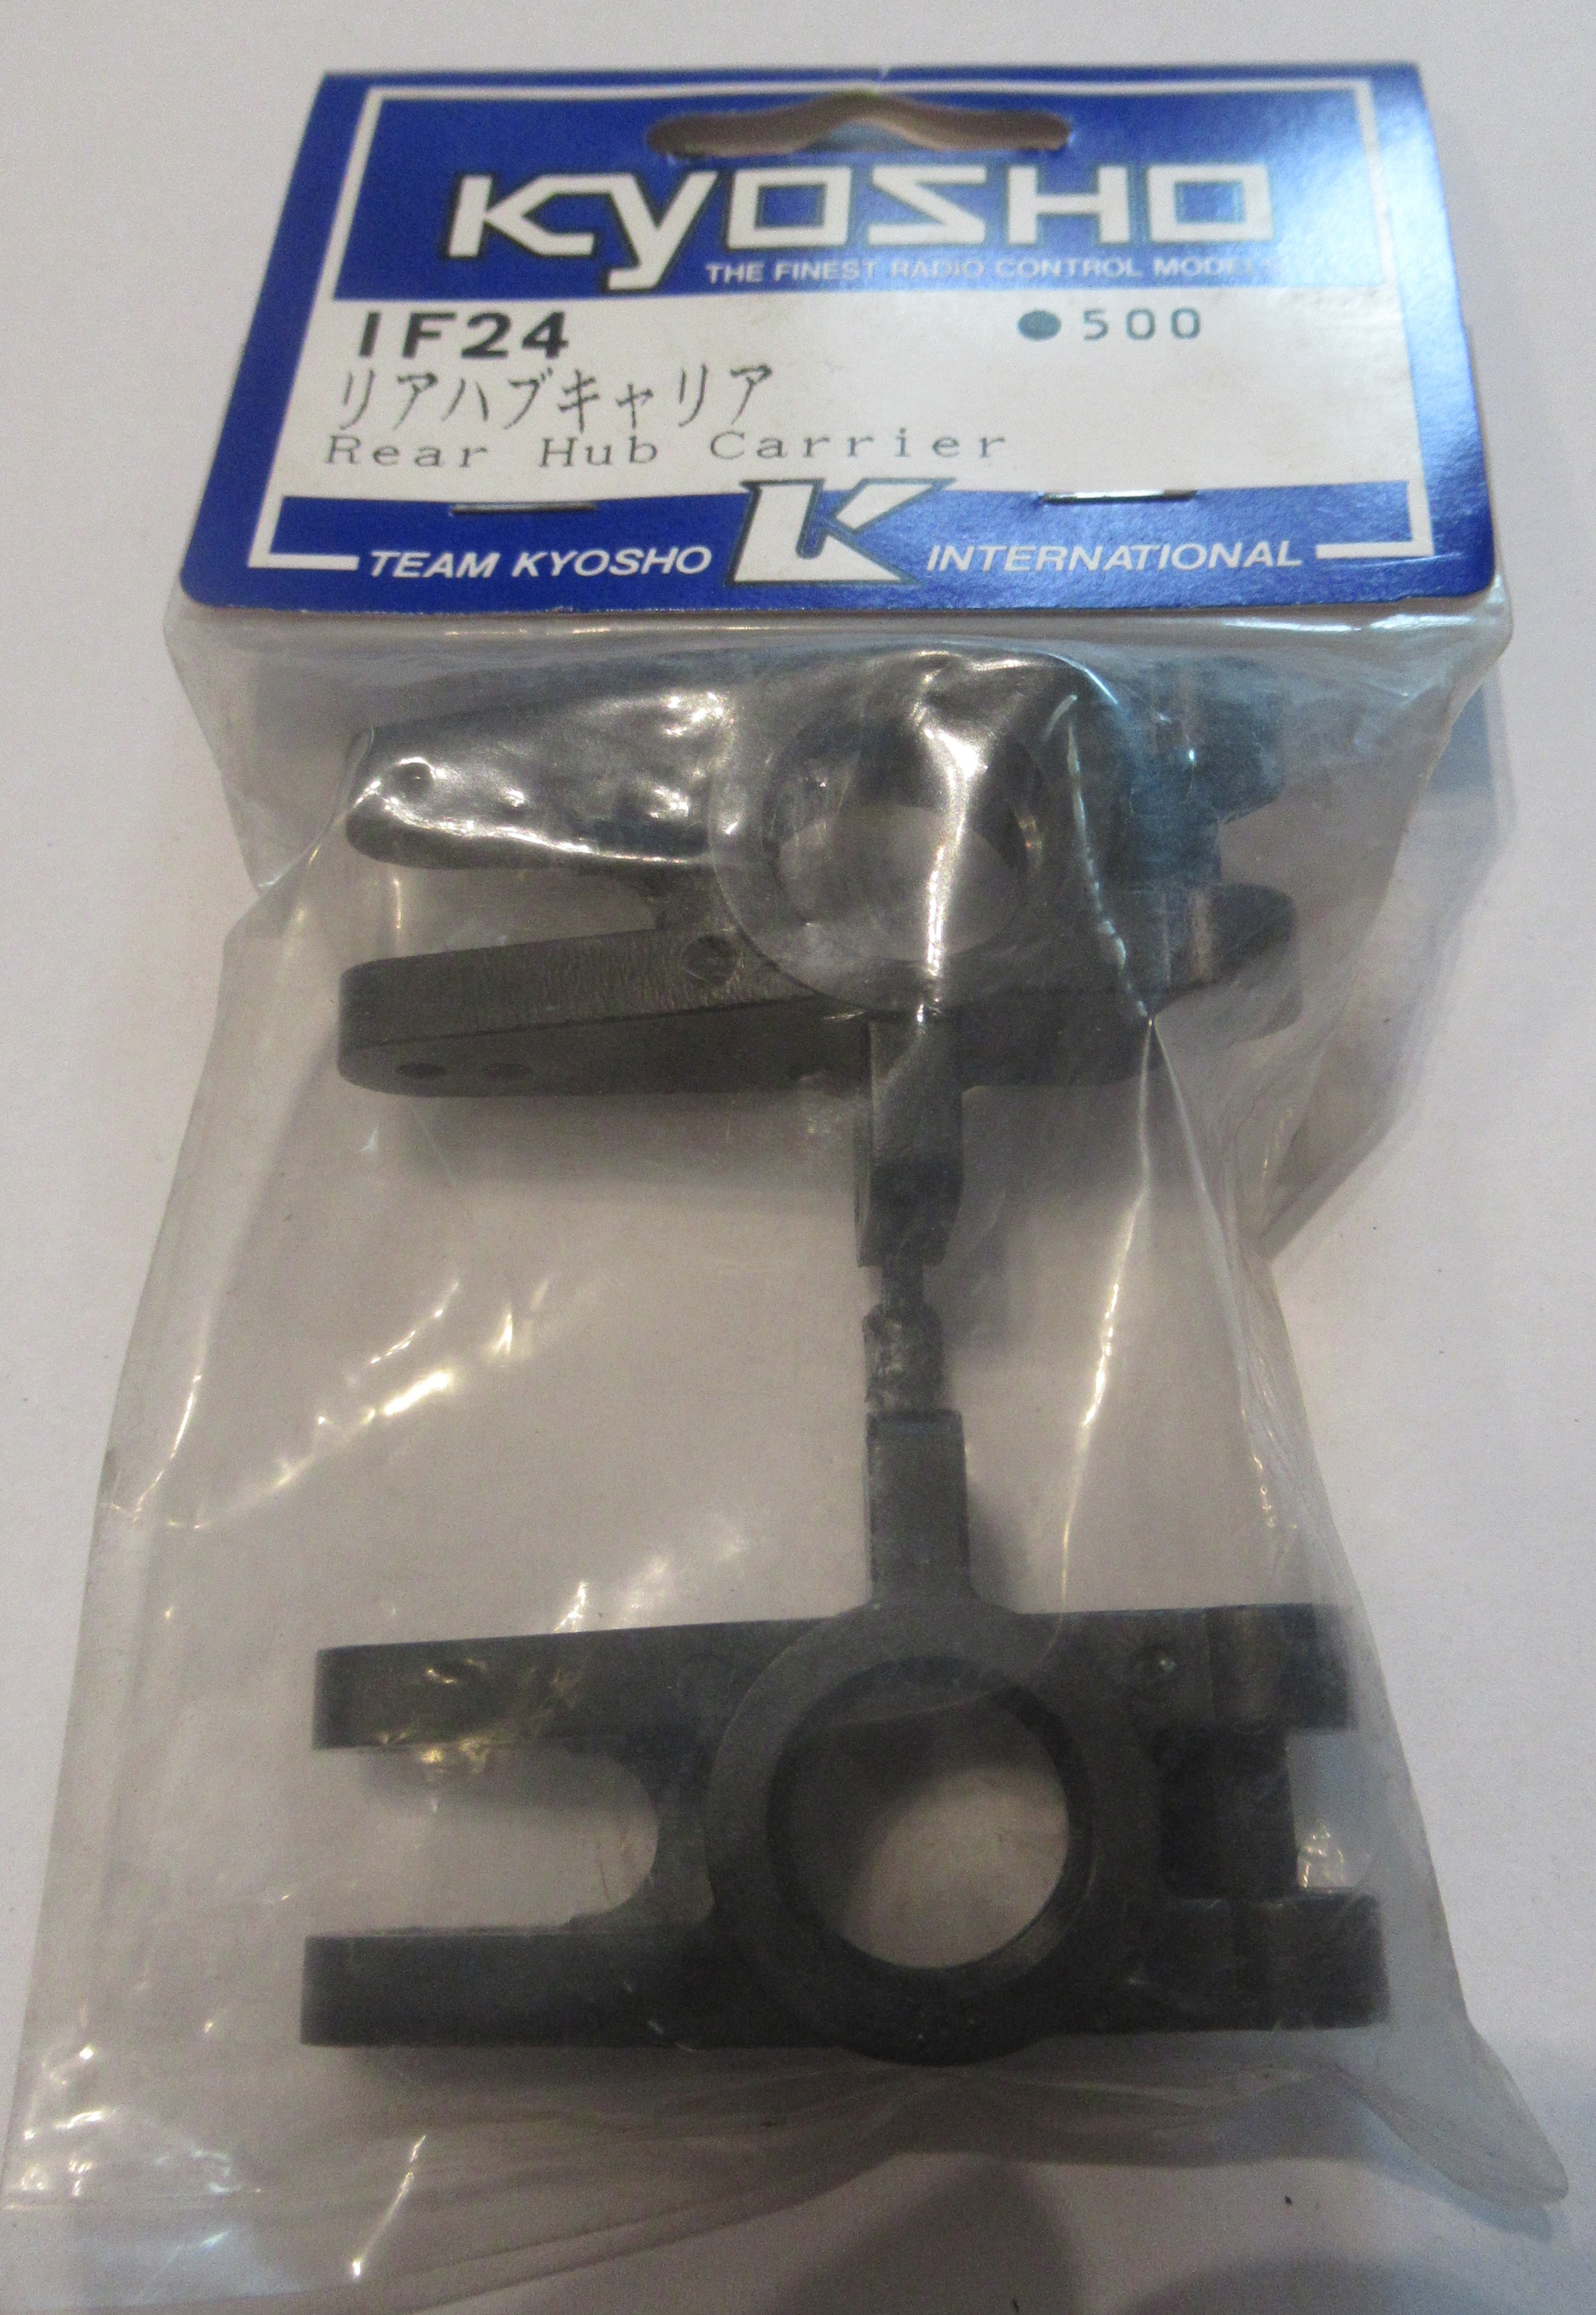 Kyosho IF24 Rear Hub Carrier